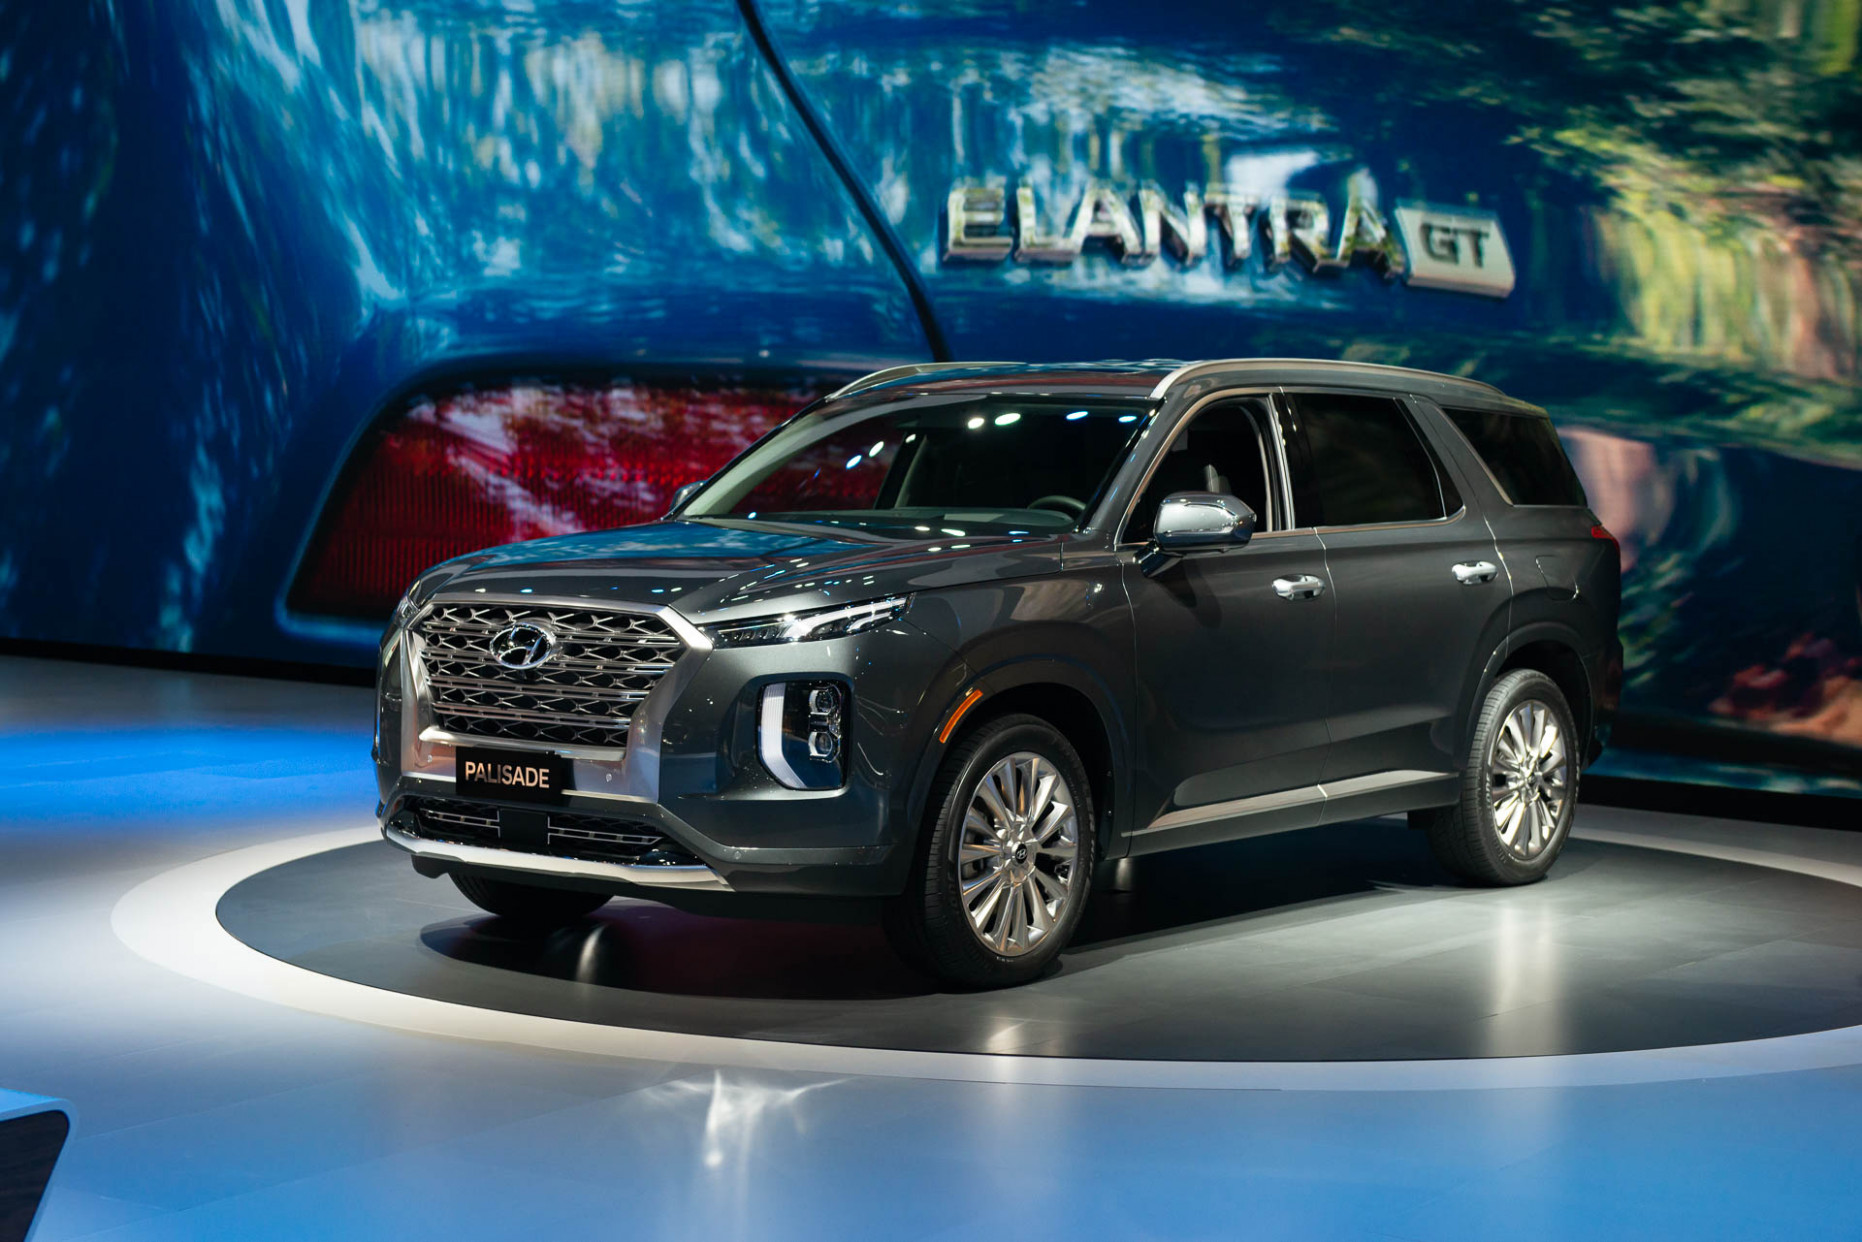 6 Hyundai Palisade crossover first look: Big SUV doesn't fall ...